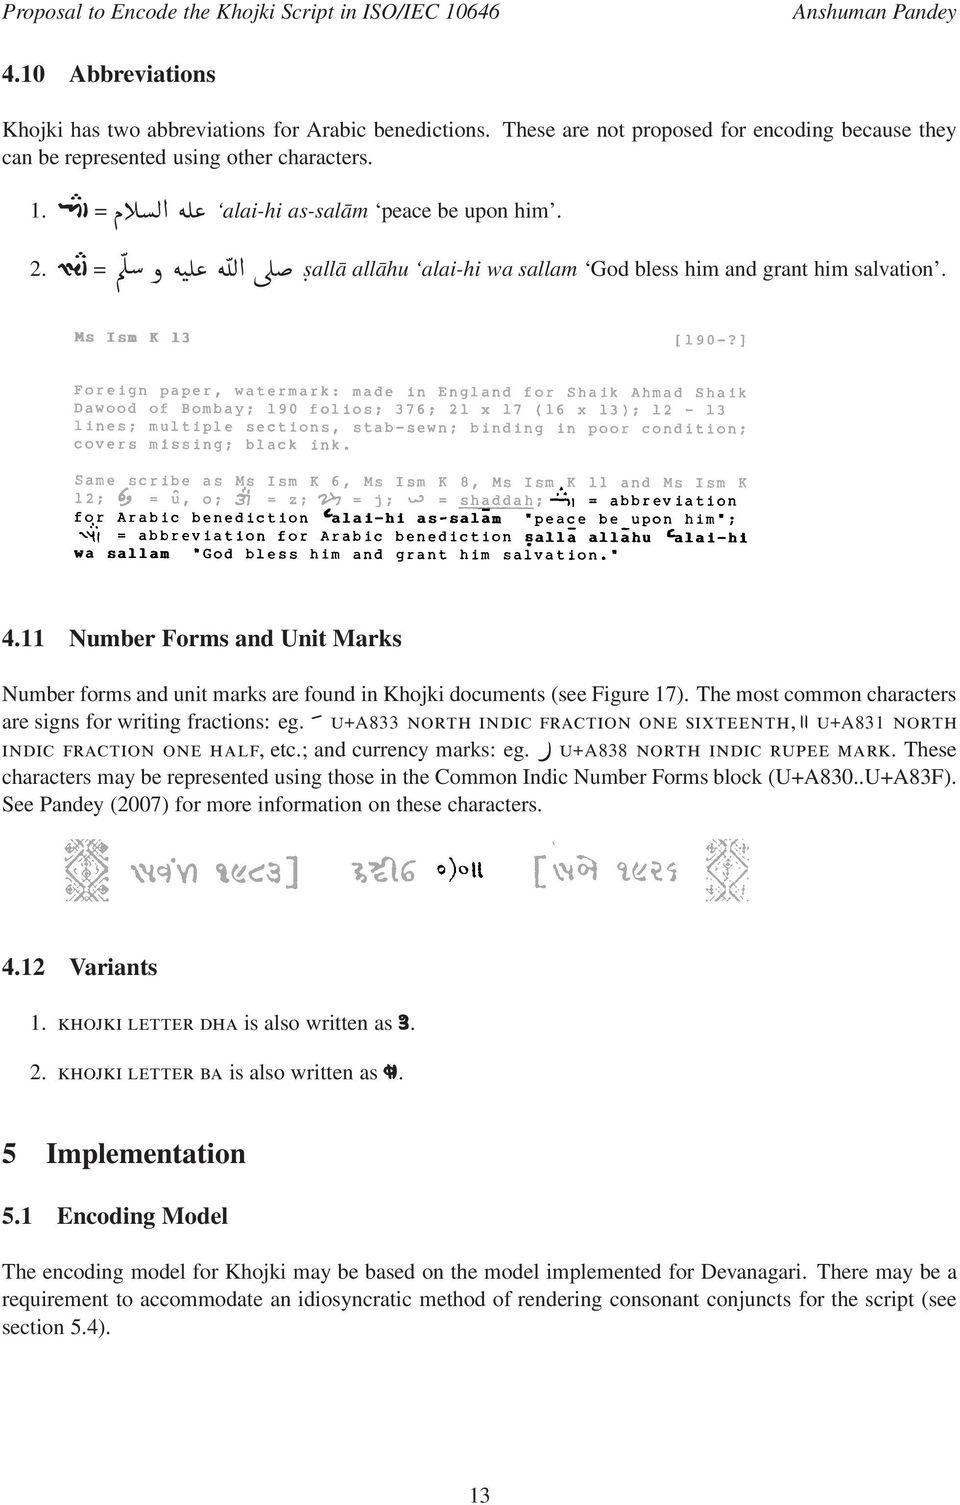 11 Number Forms and Unit Marks Number forms and unit marks are found in Khojki documents (see Figure 17). The most common characters are signs for writing fractions: eg.